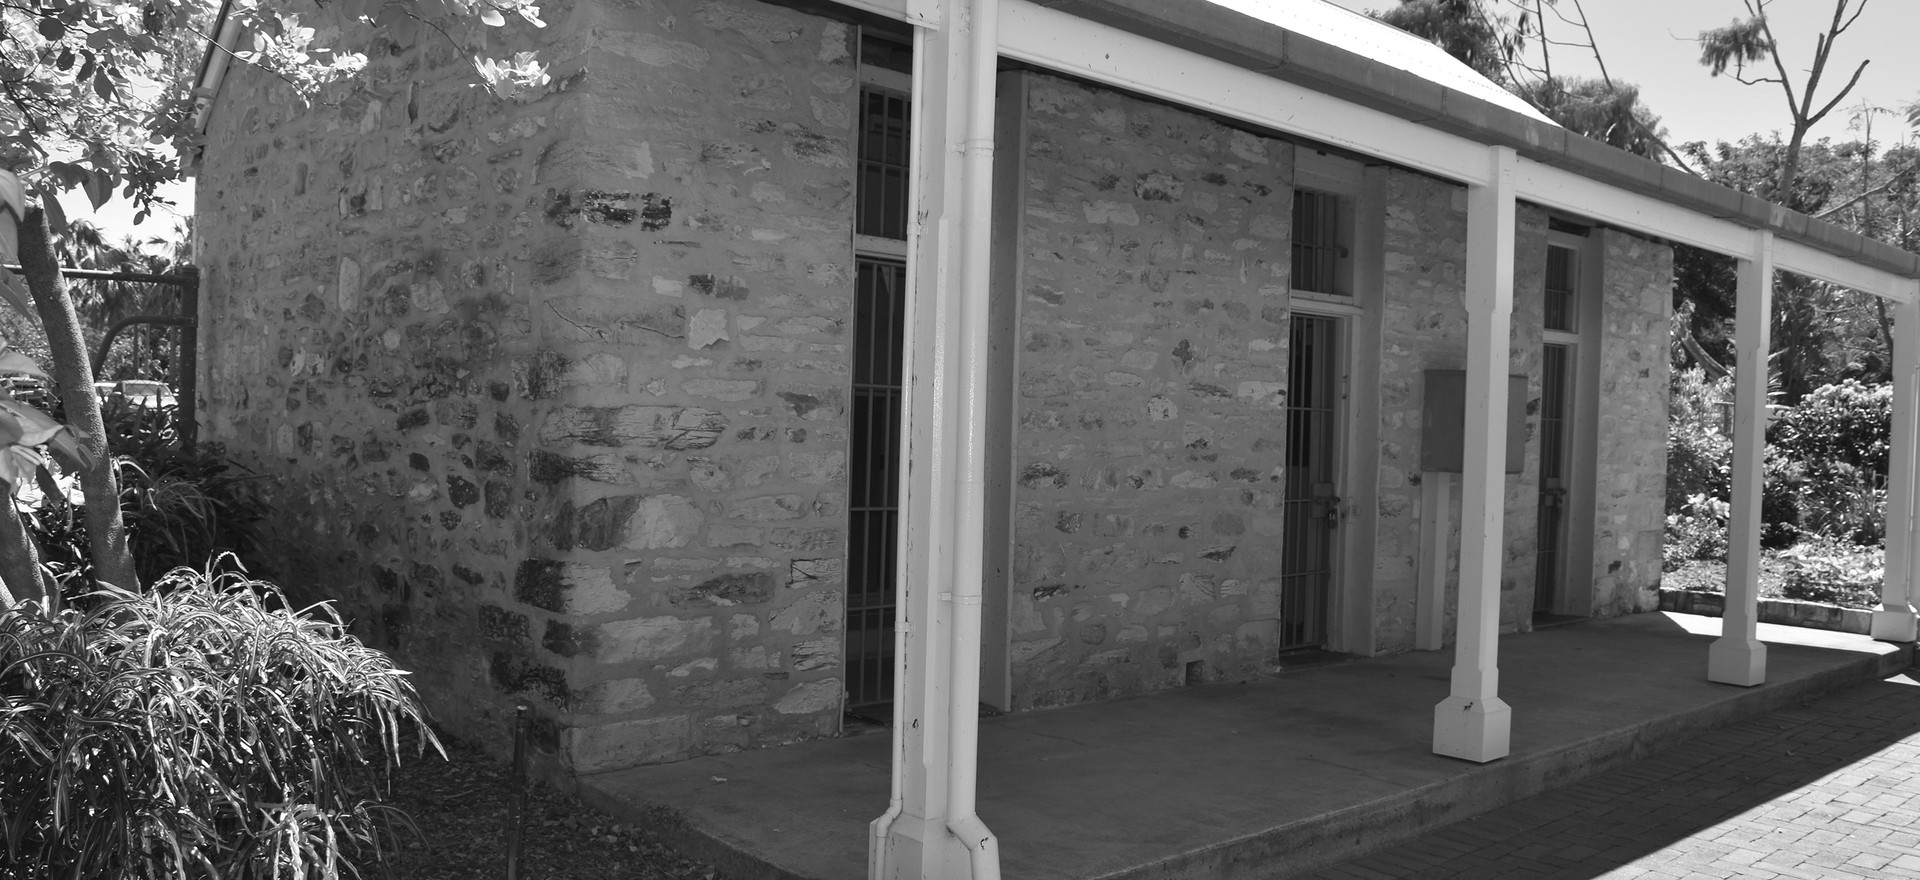 Original gaol cell block, Police Station and Court House, Palmerston.